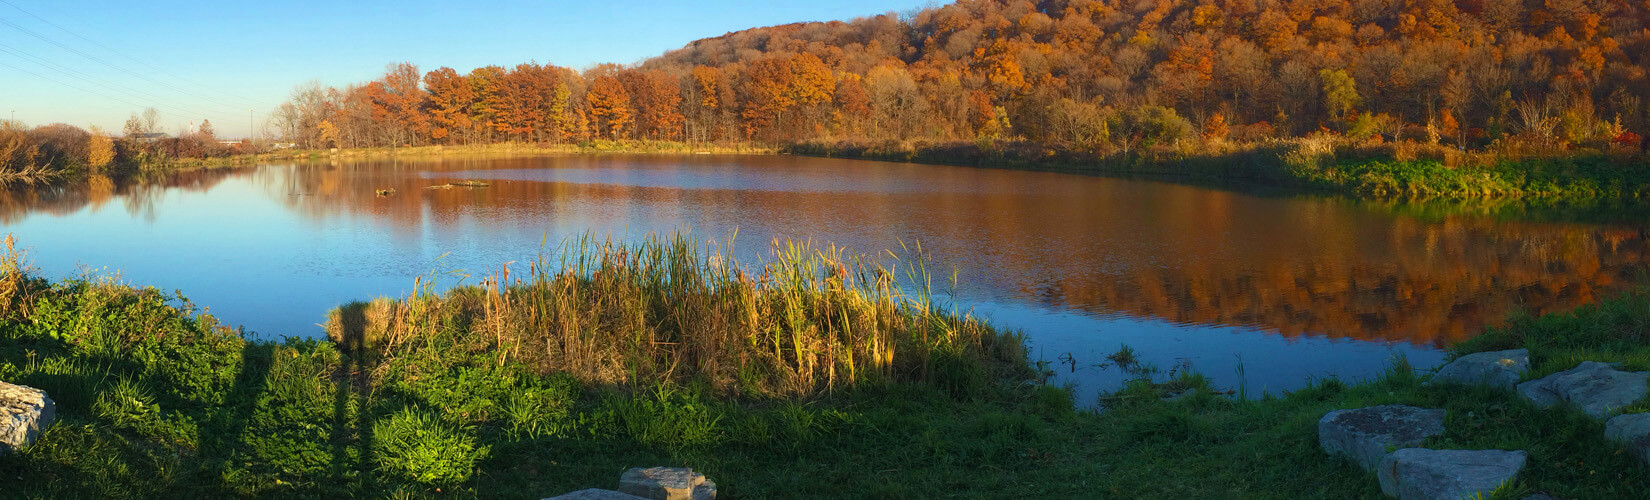 Woodend Conservation Area: A Great Natural Spot in Niagara :: I've Been Bit! Travel Blog